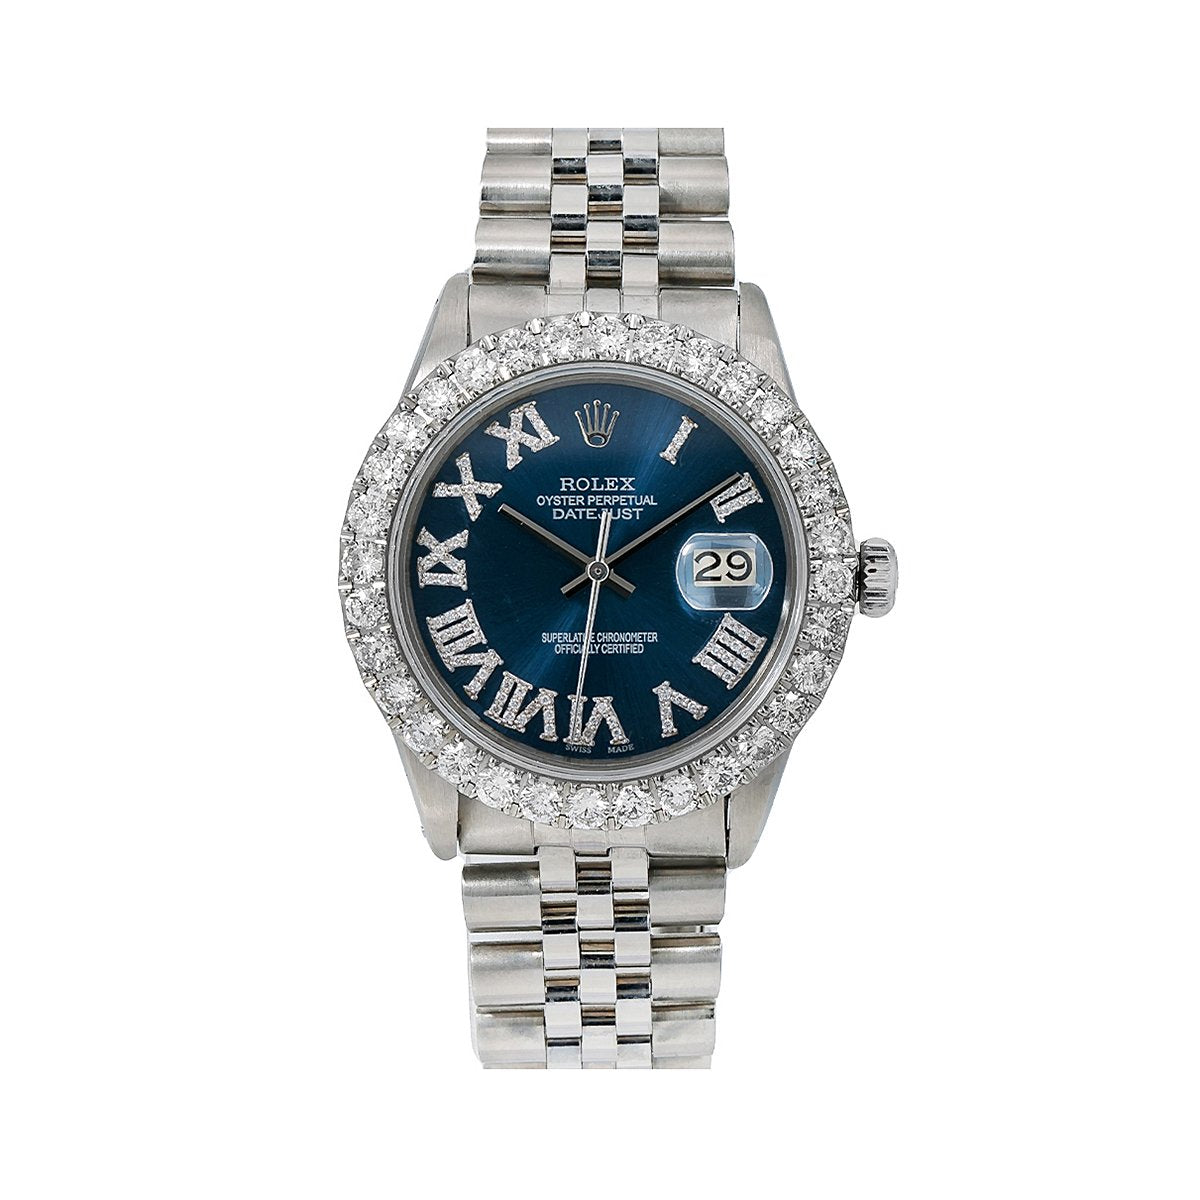 Rolex Datejust Diamond Watch, 31mm, Blue Diamond Dial With 2.95 CT Diamonds